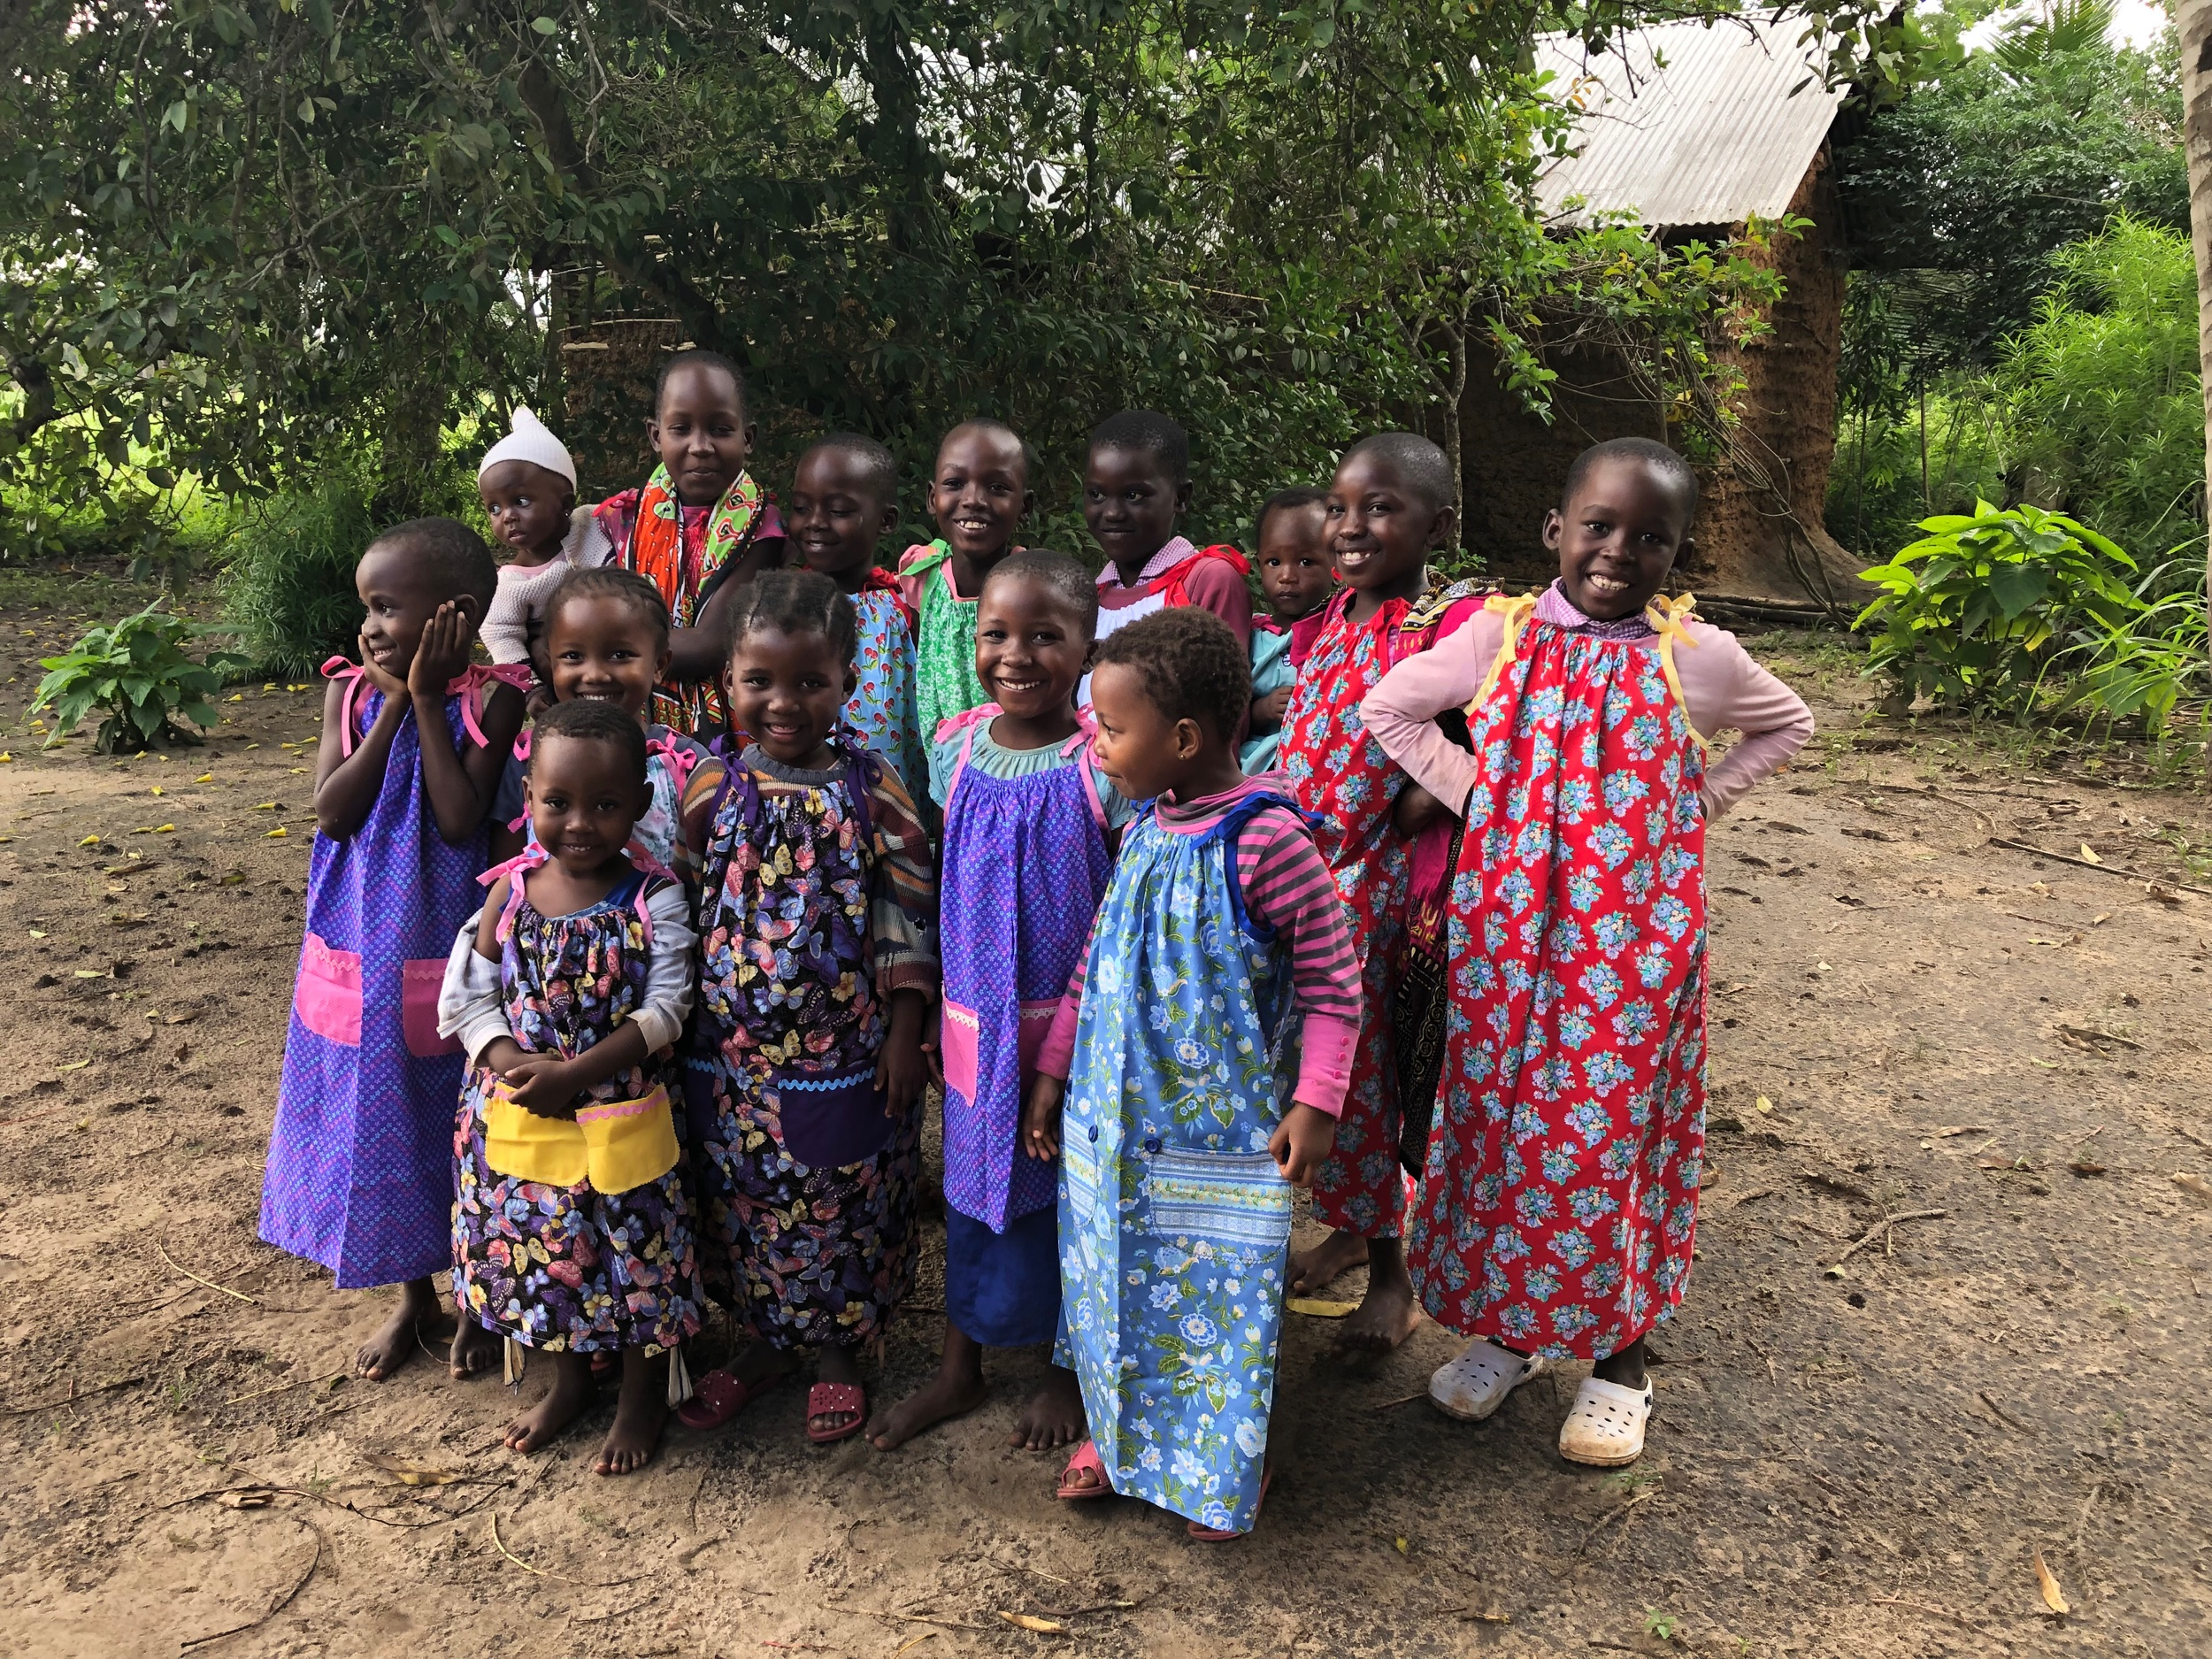 We were able to bless some little girls in the village with some dresses made by Pastor Mark's mom and one of the small groups at Fox River. They loved it!